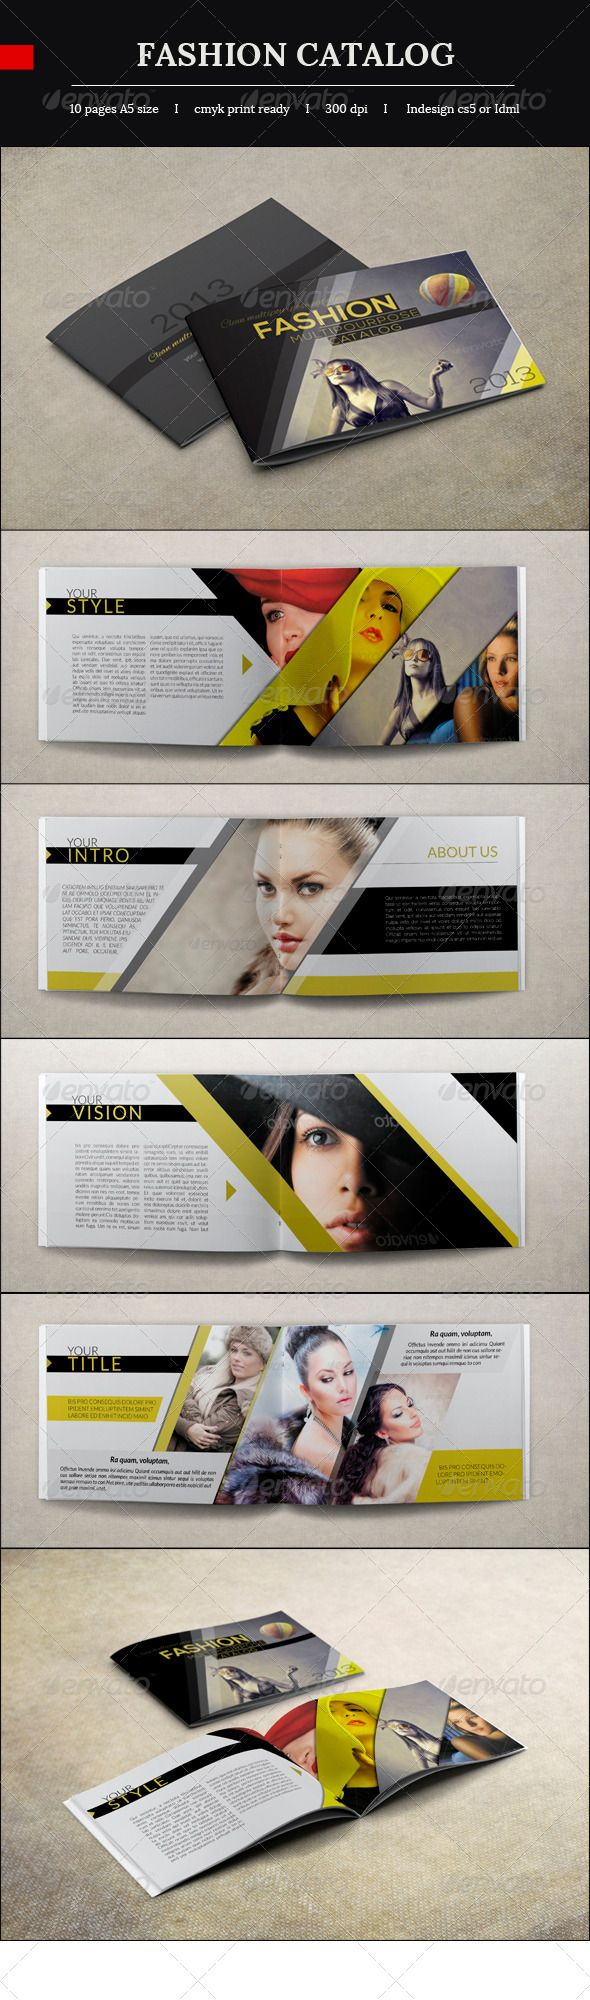 Fashion Catalog  #GraphicRiver         10 Pages 210×148mm with bleed lines 300 DPI CMYK Print Ready idml and .indd files included   Note Photo are not included   Fonts Used   All fonts that i used are Free! Alex Brush :   .fontsquirrel /fonts/alex-brush Nexa     :   .fontsquirrel /fonts/nexa Lato     :    .fontsquirrel /fonts/lato     Created: 16May13 GraphicsFilesIncluded: InDesignINDD Layered: Yes MinimumAdobeCSVersion: CS PrintDimensions: 210x148 Tags: GoldenBrochure